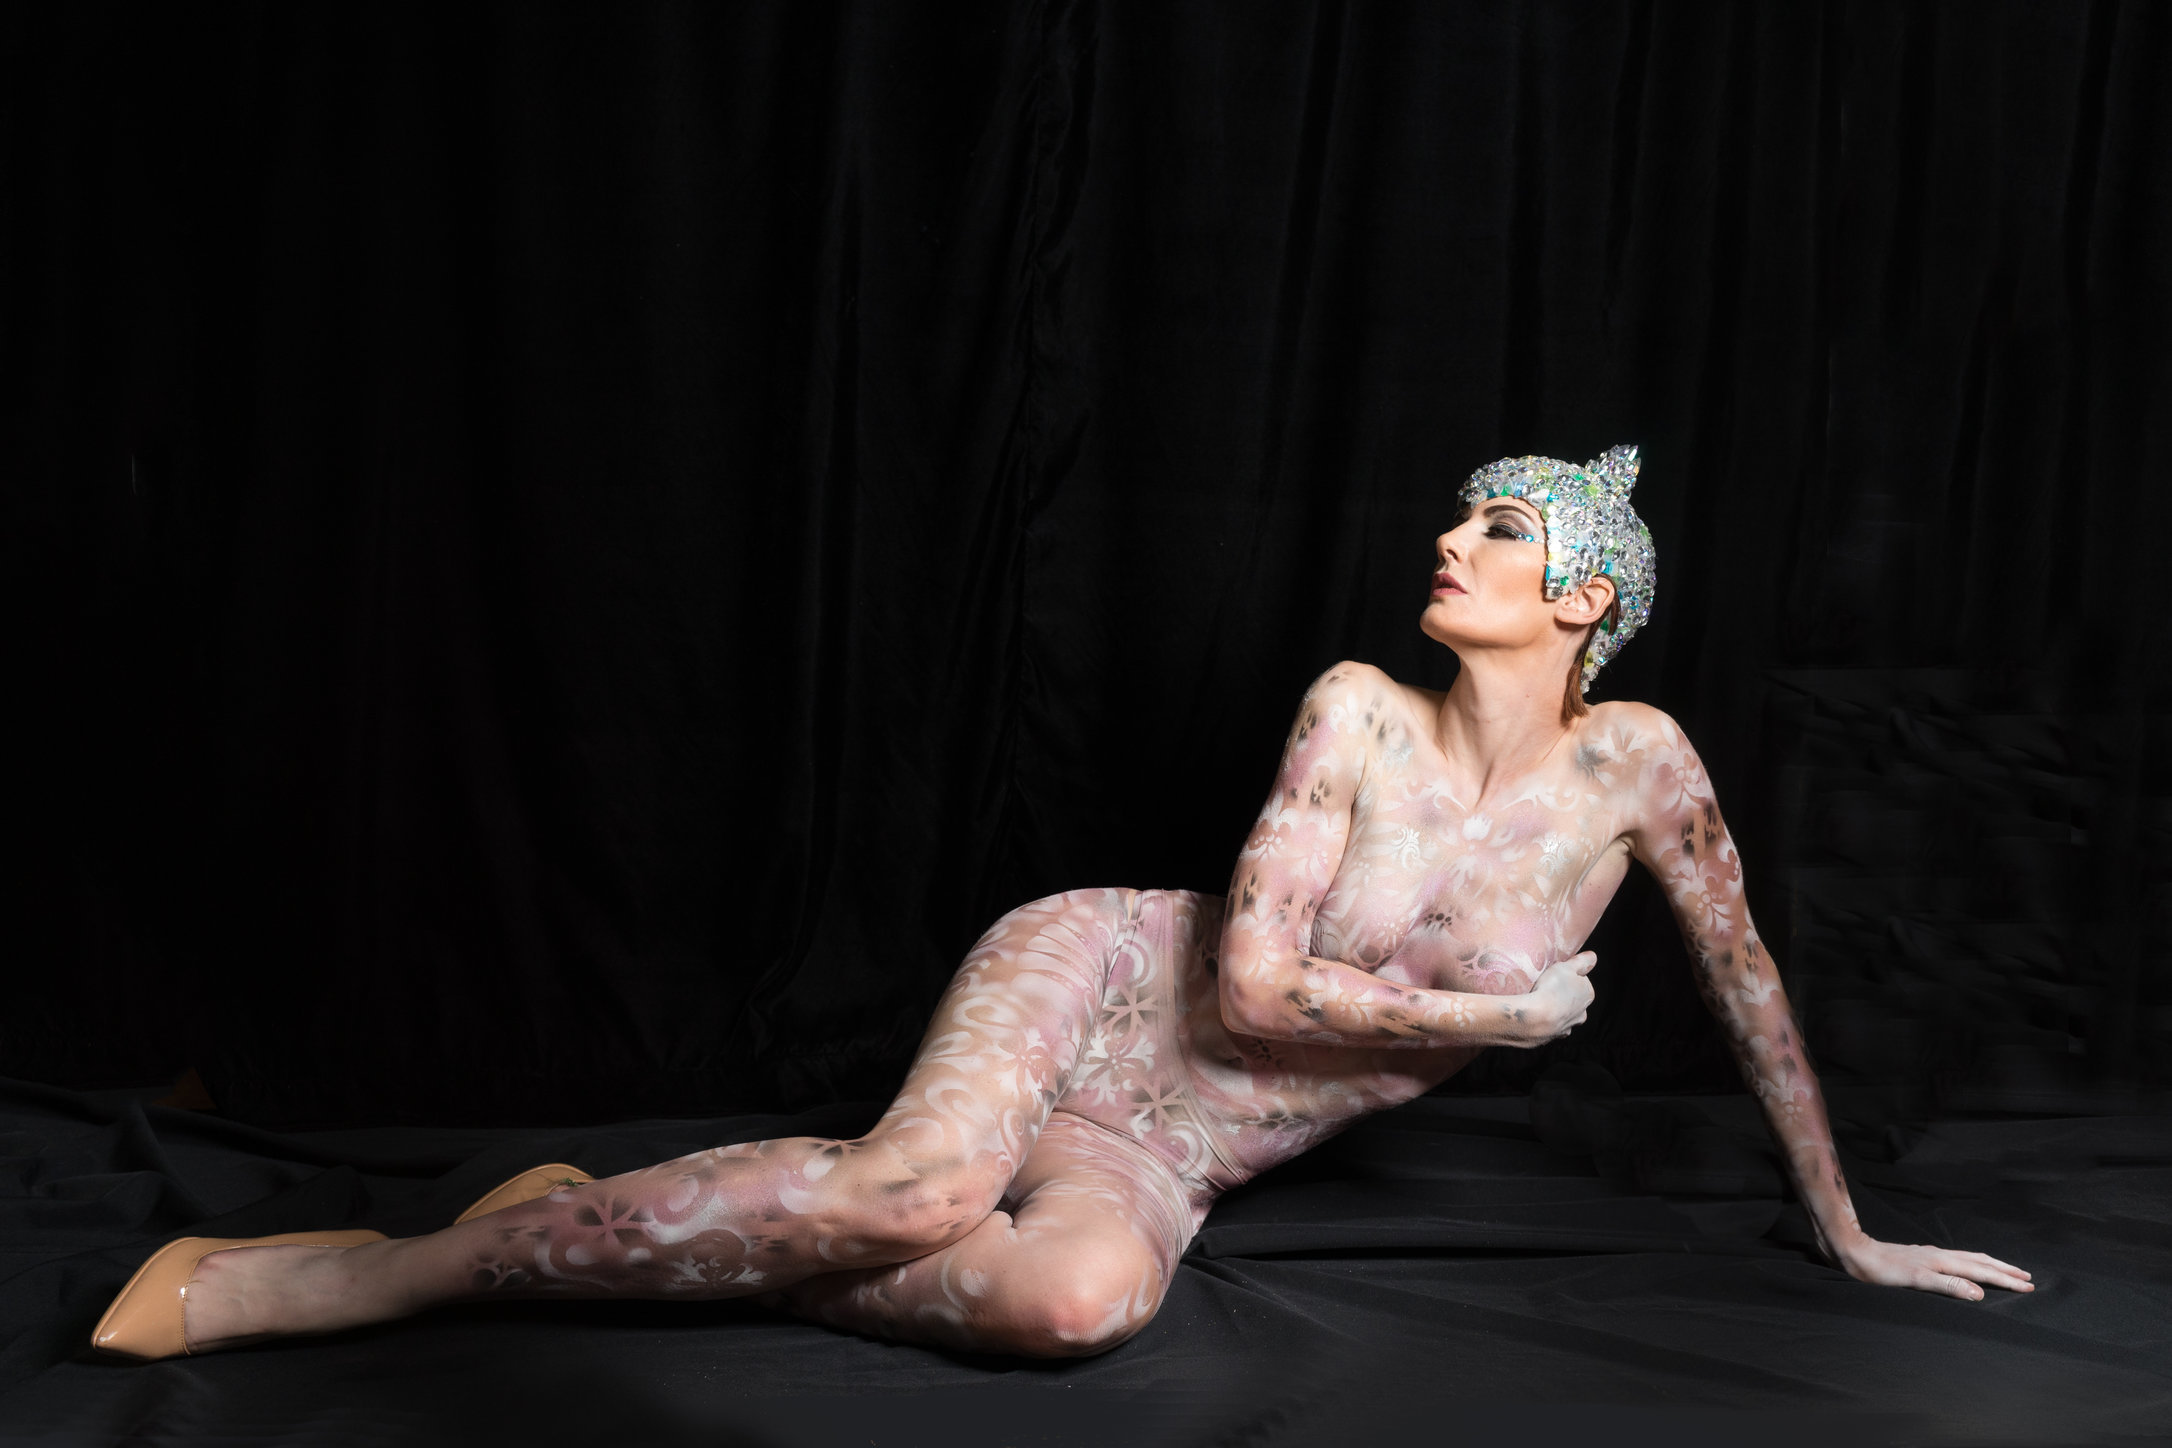 BodyPaint-207-Edit.jpg